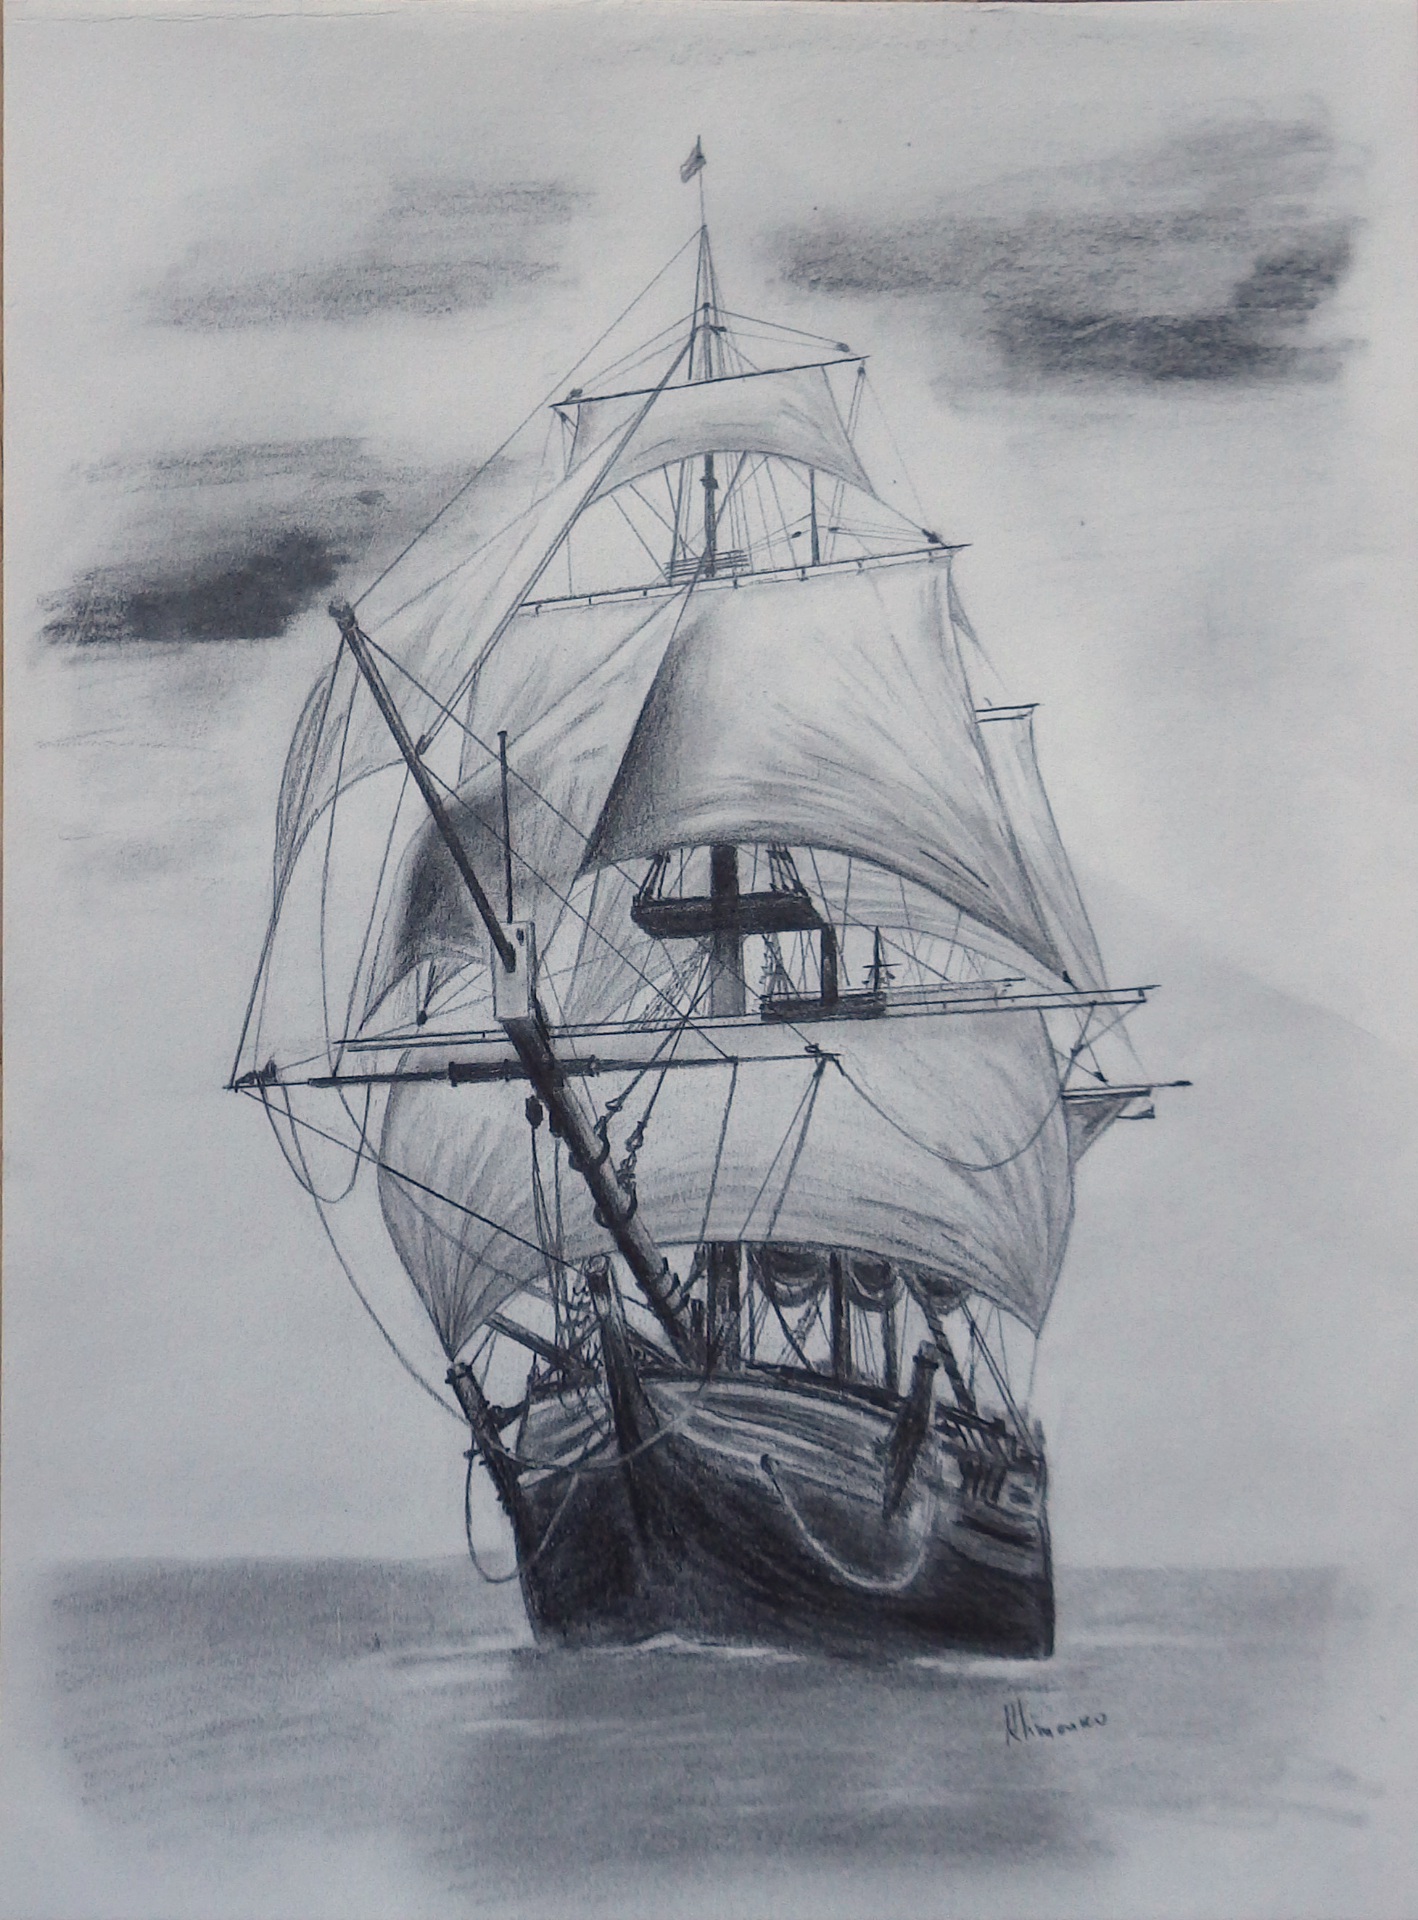 Old tall ship sail ship sketch original art graphite pencil drawing by elena whitman